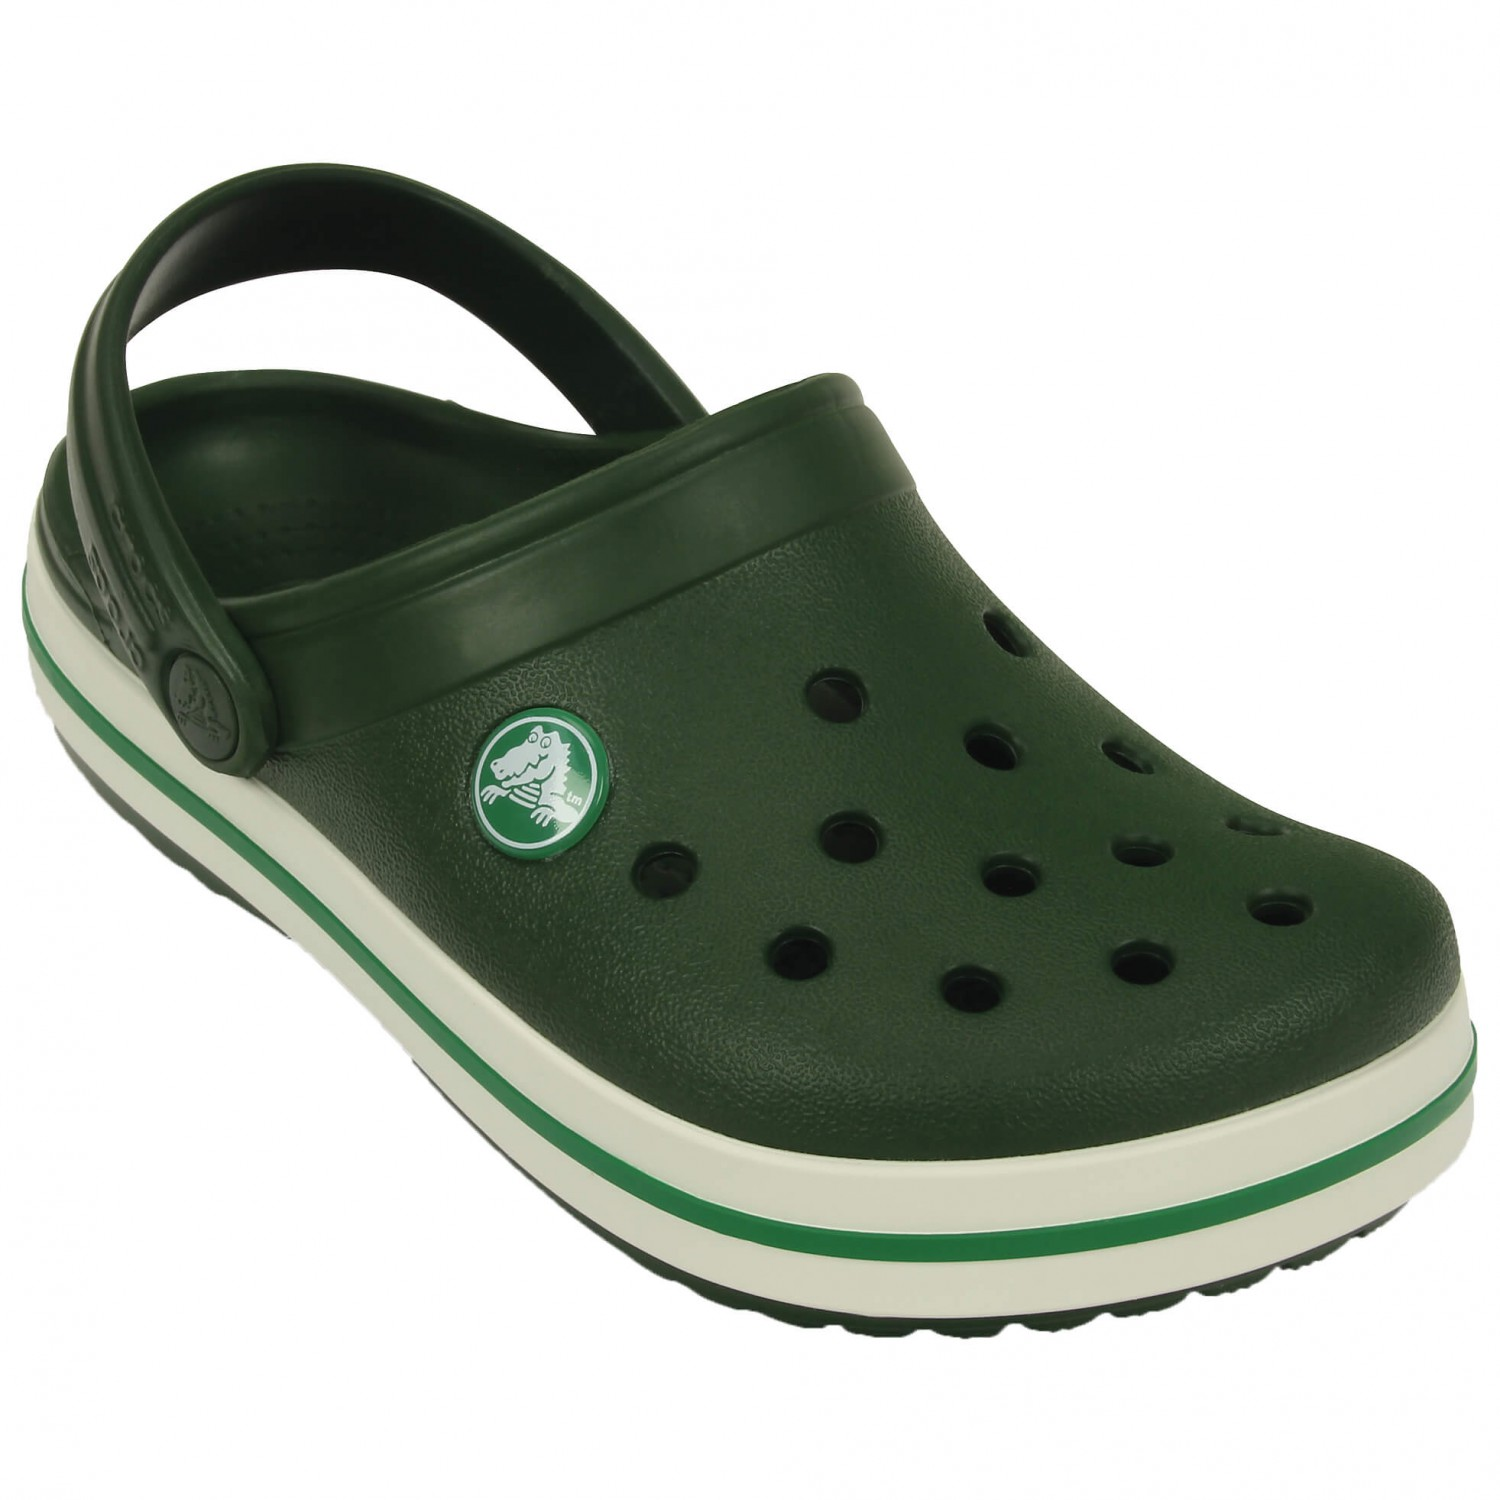 Shop Crocs Outlet. Find more of what you love on eBay stores!